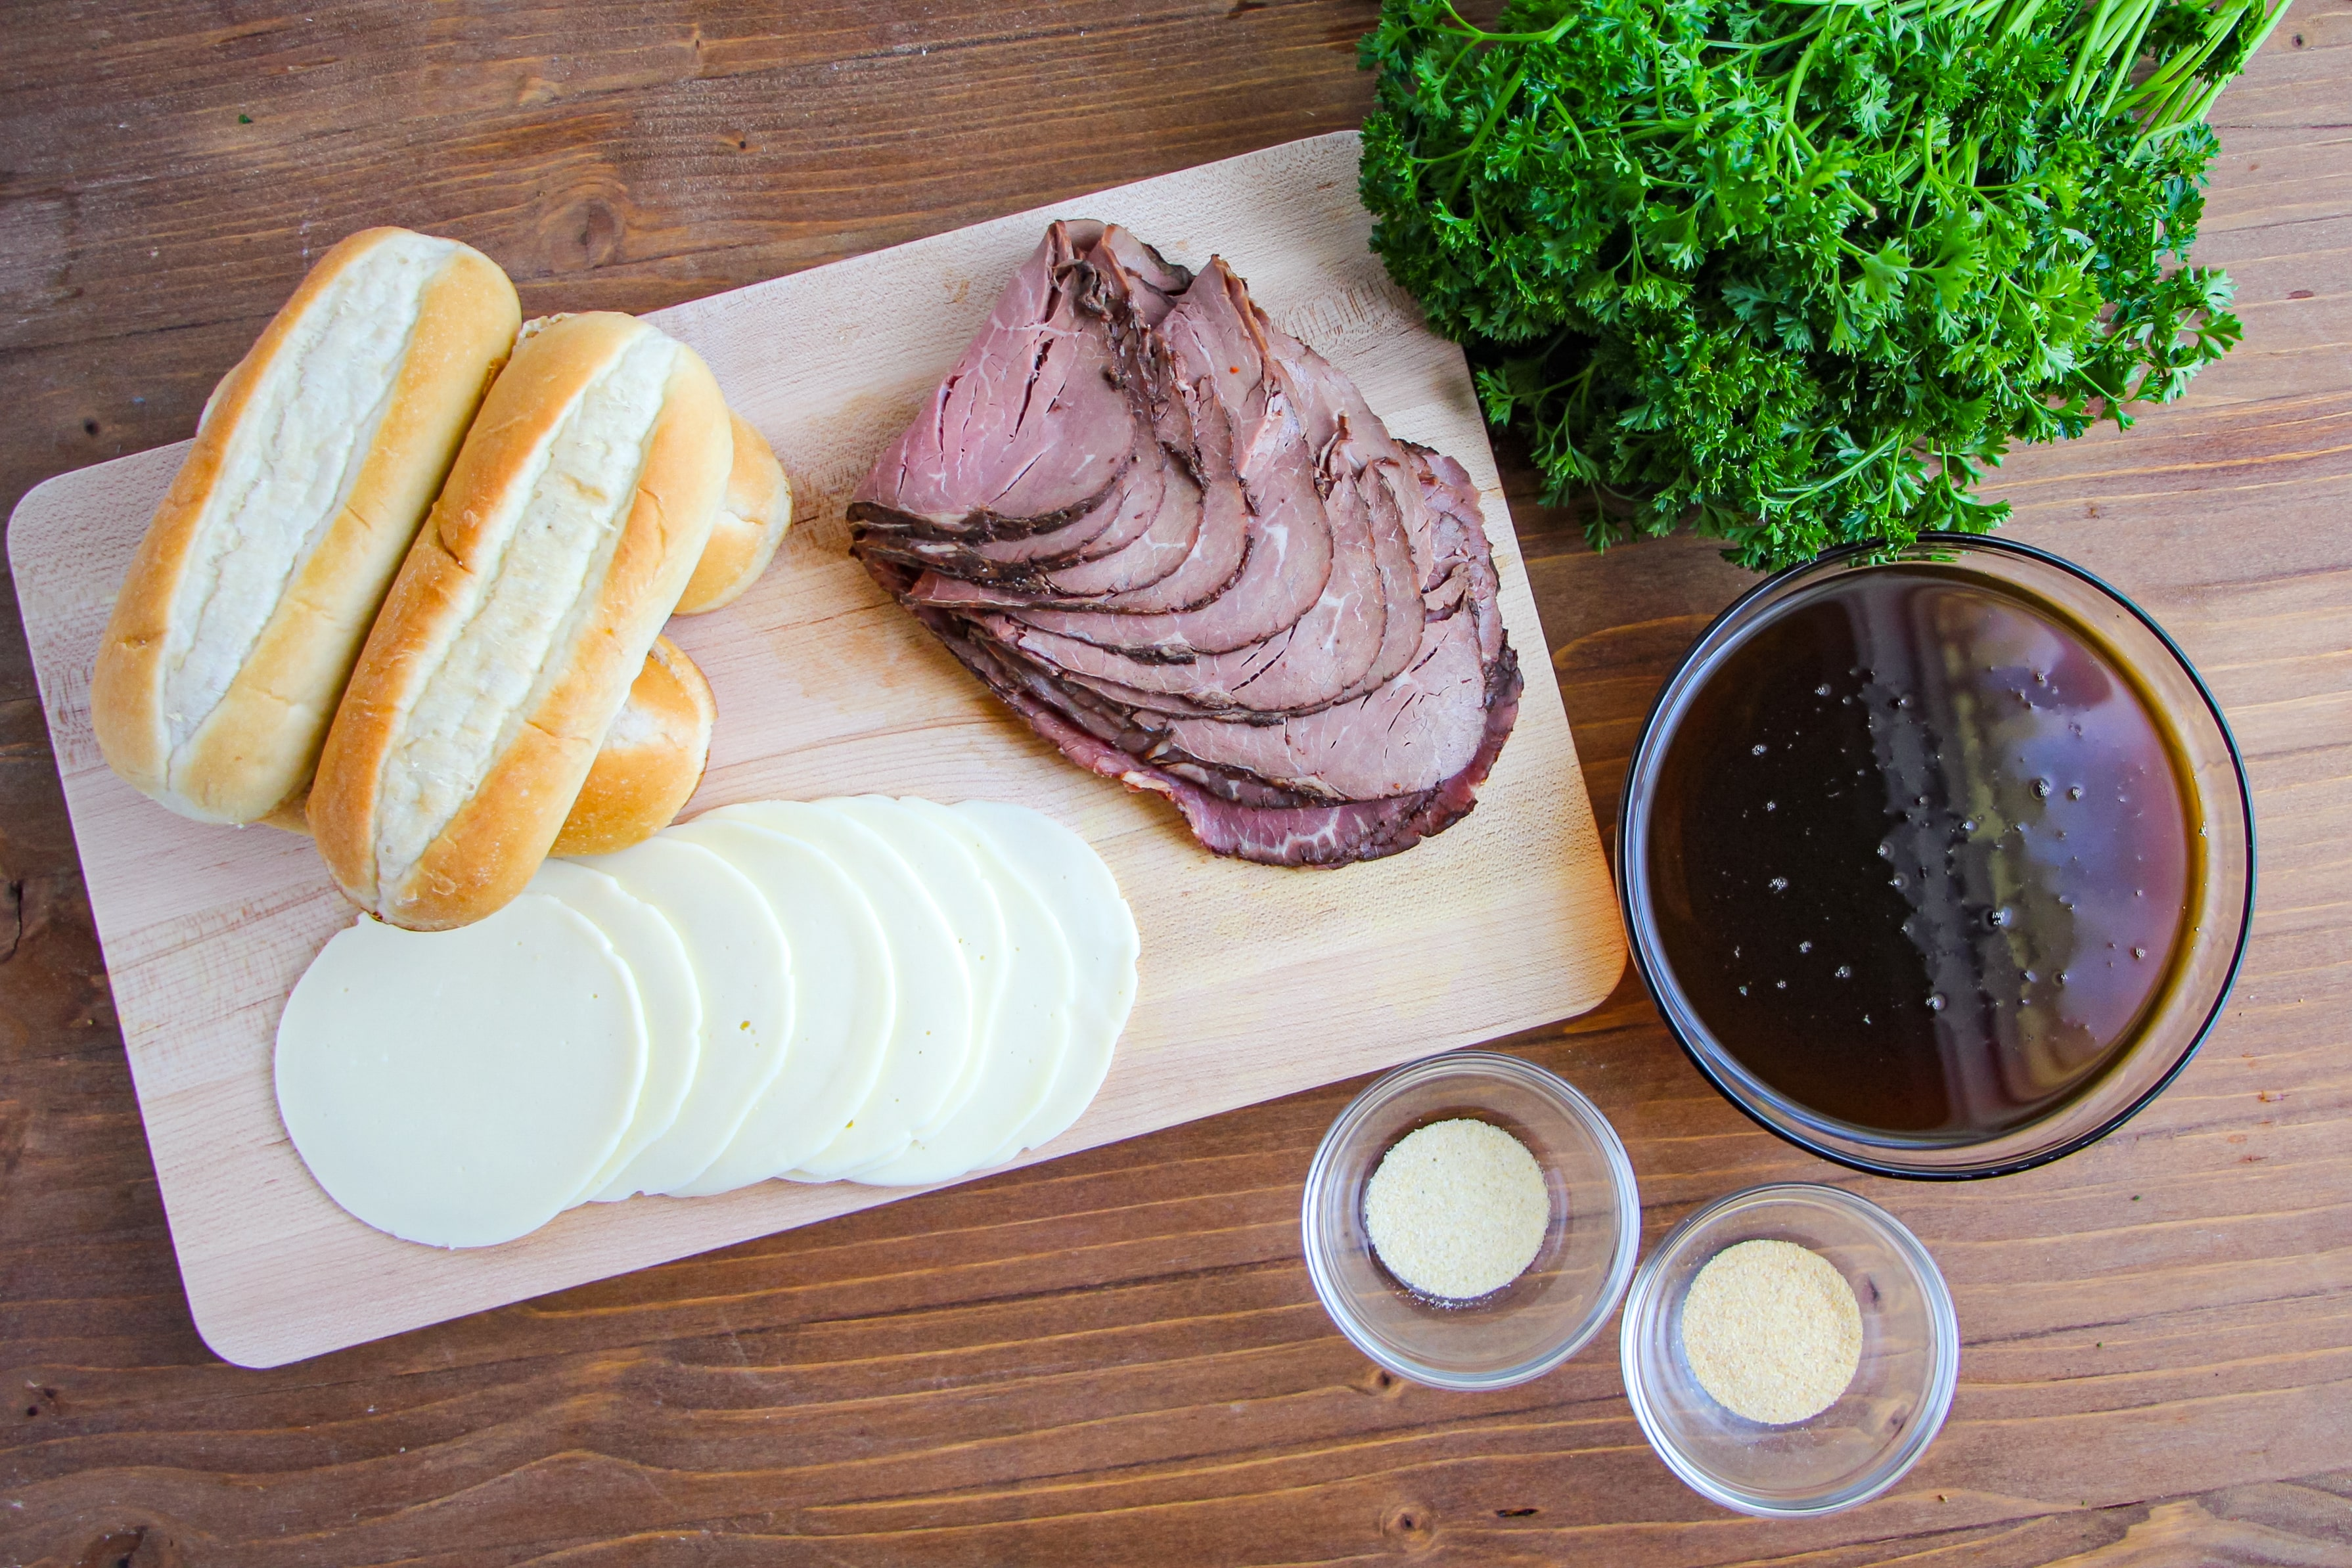 Ingredients needed for this recipe on a wooden cutting board.